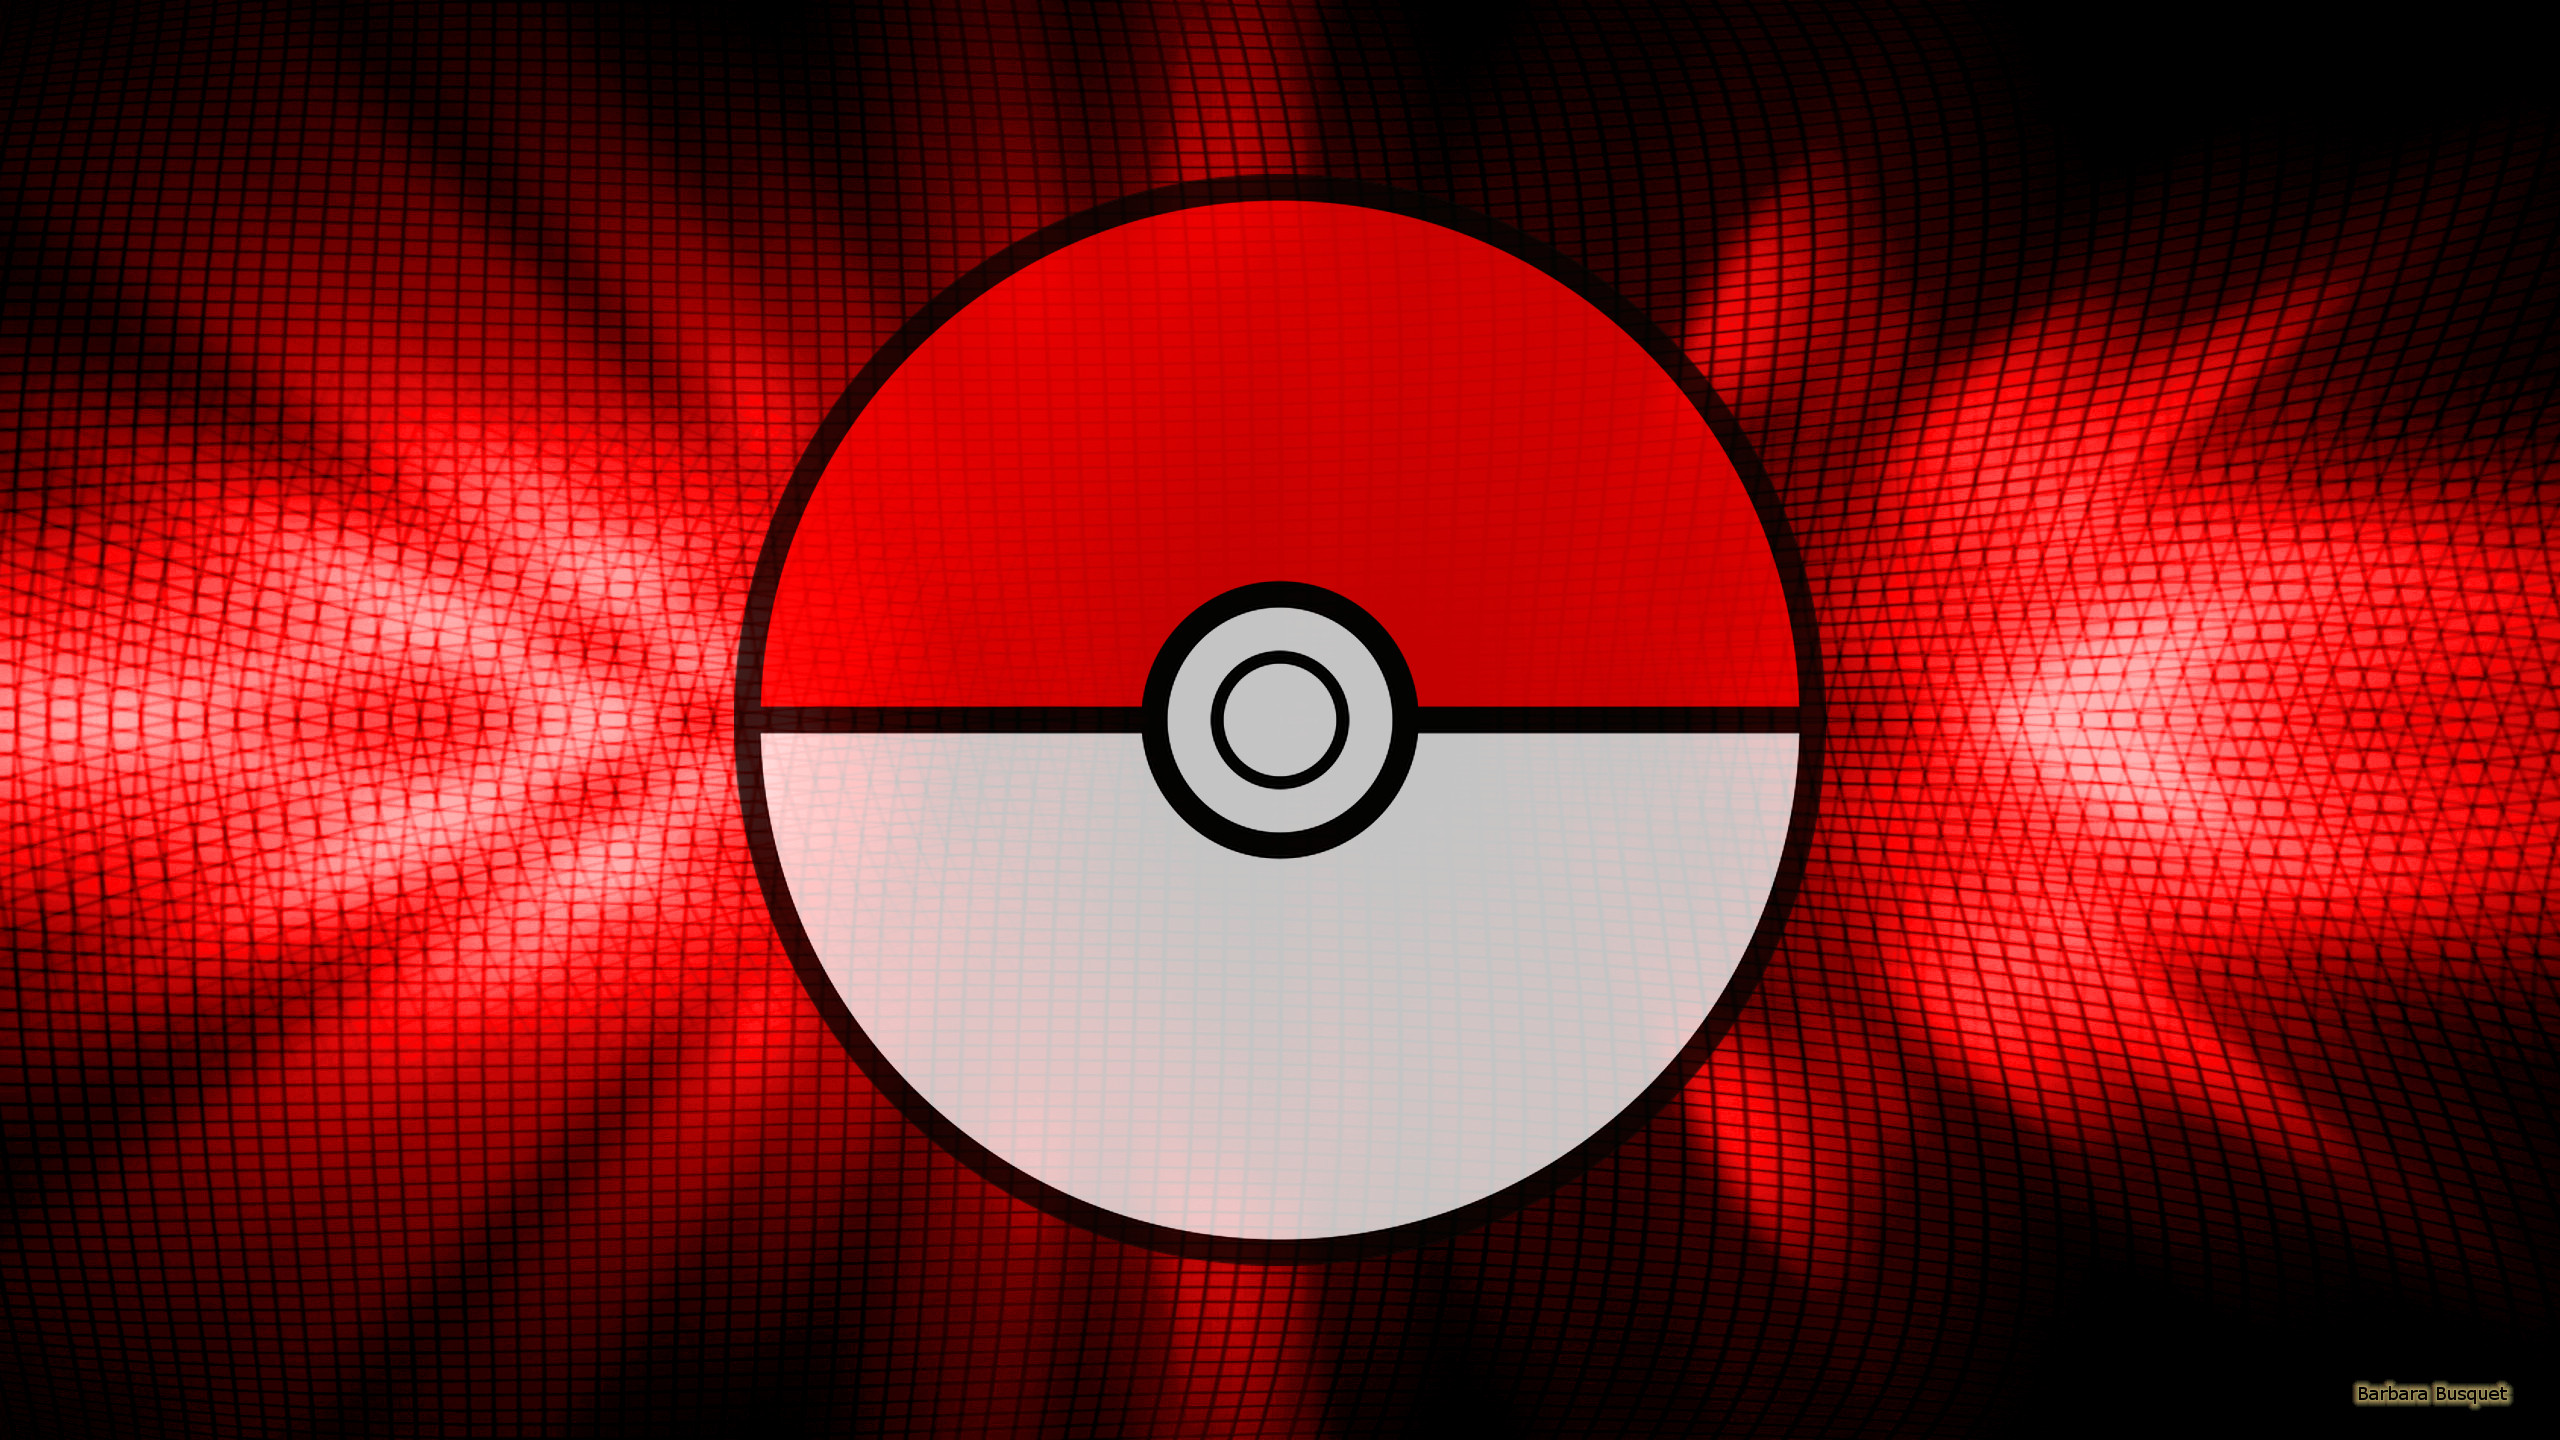 1396 Pokémon HD Wallpapers  Background Images  Wallpaper